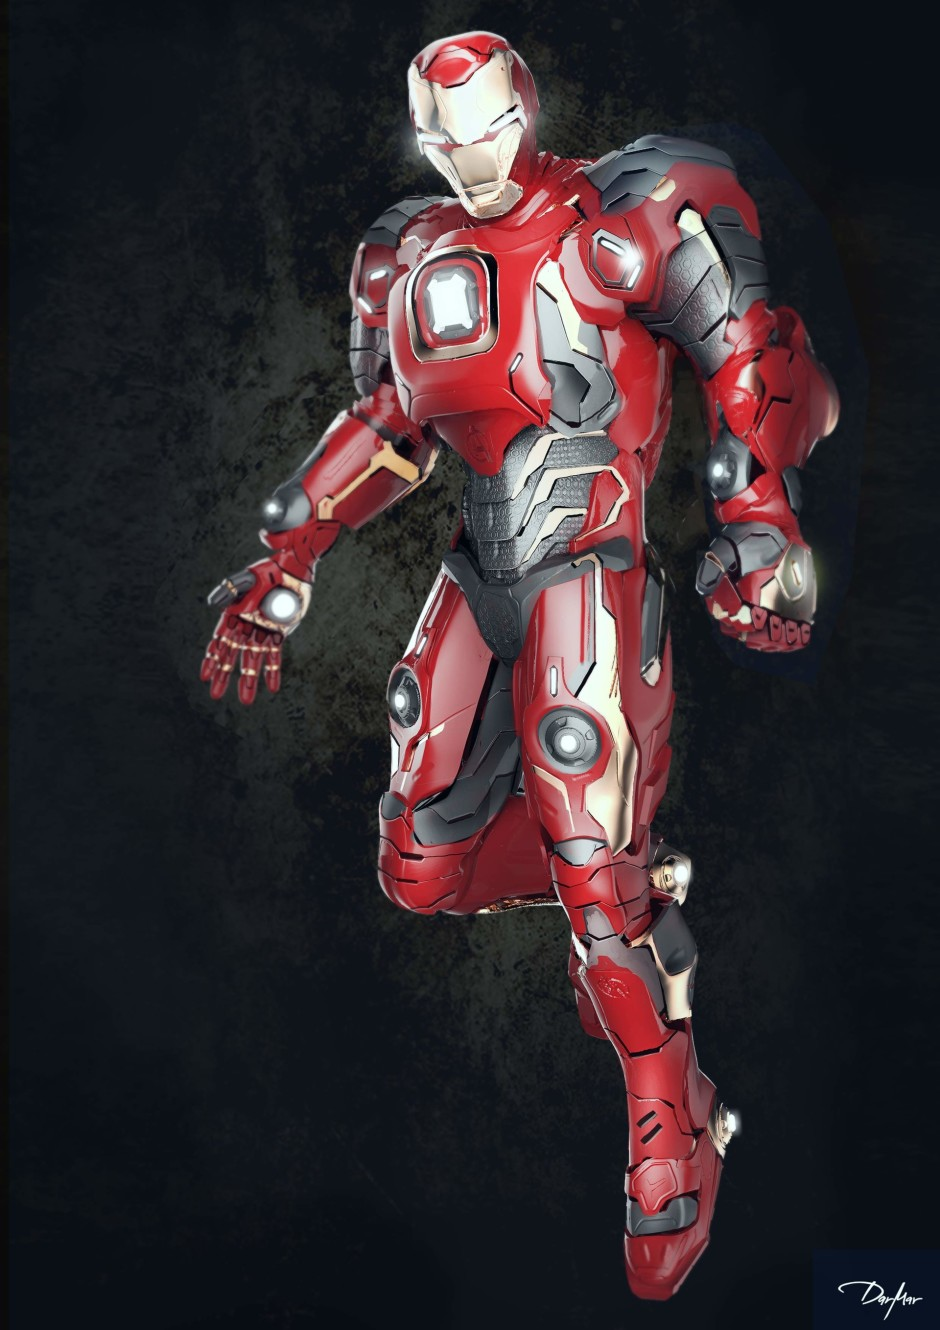 darko-markovic-keyshot-ironman-01